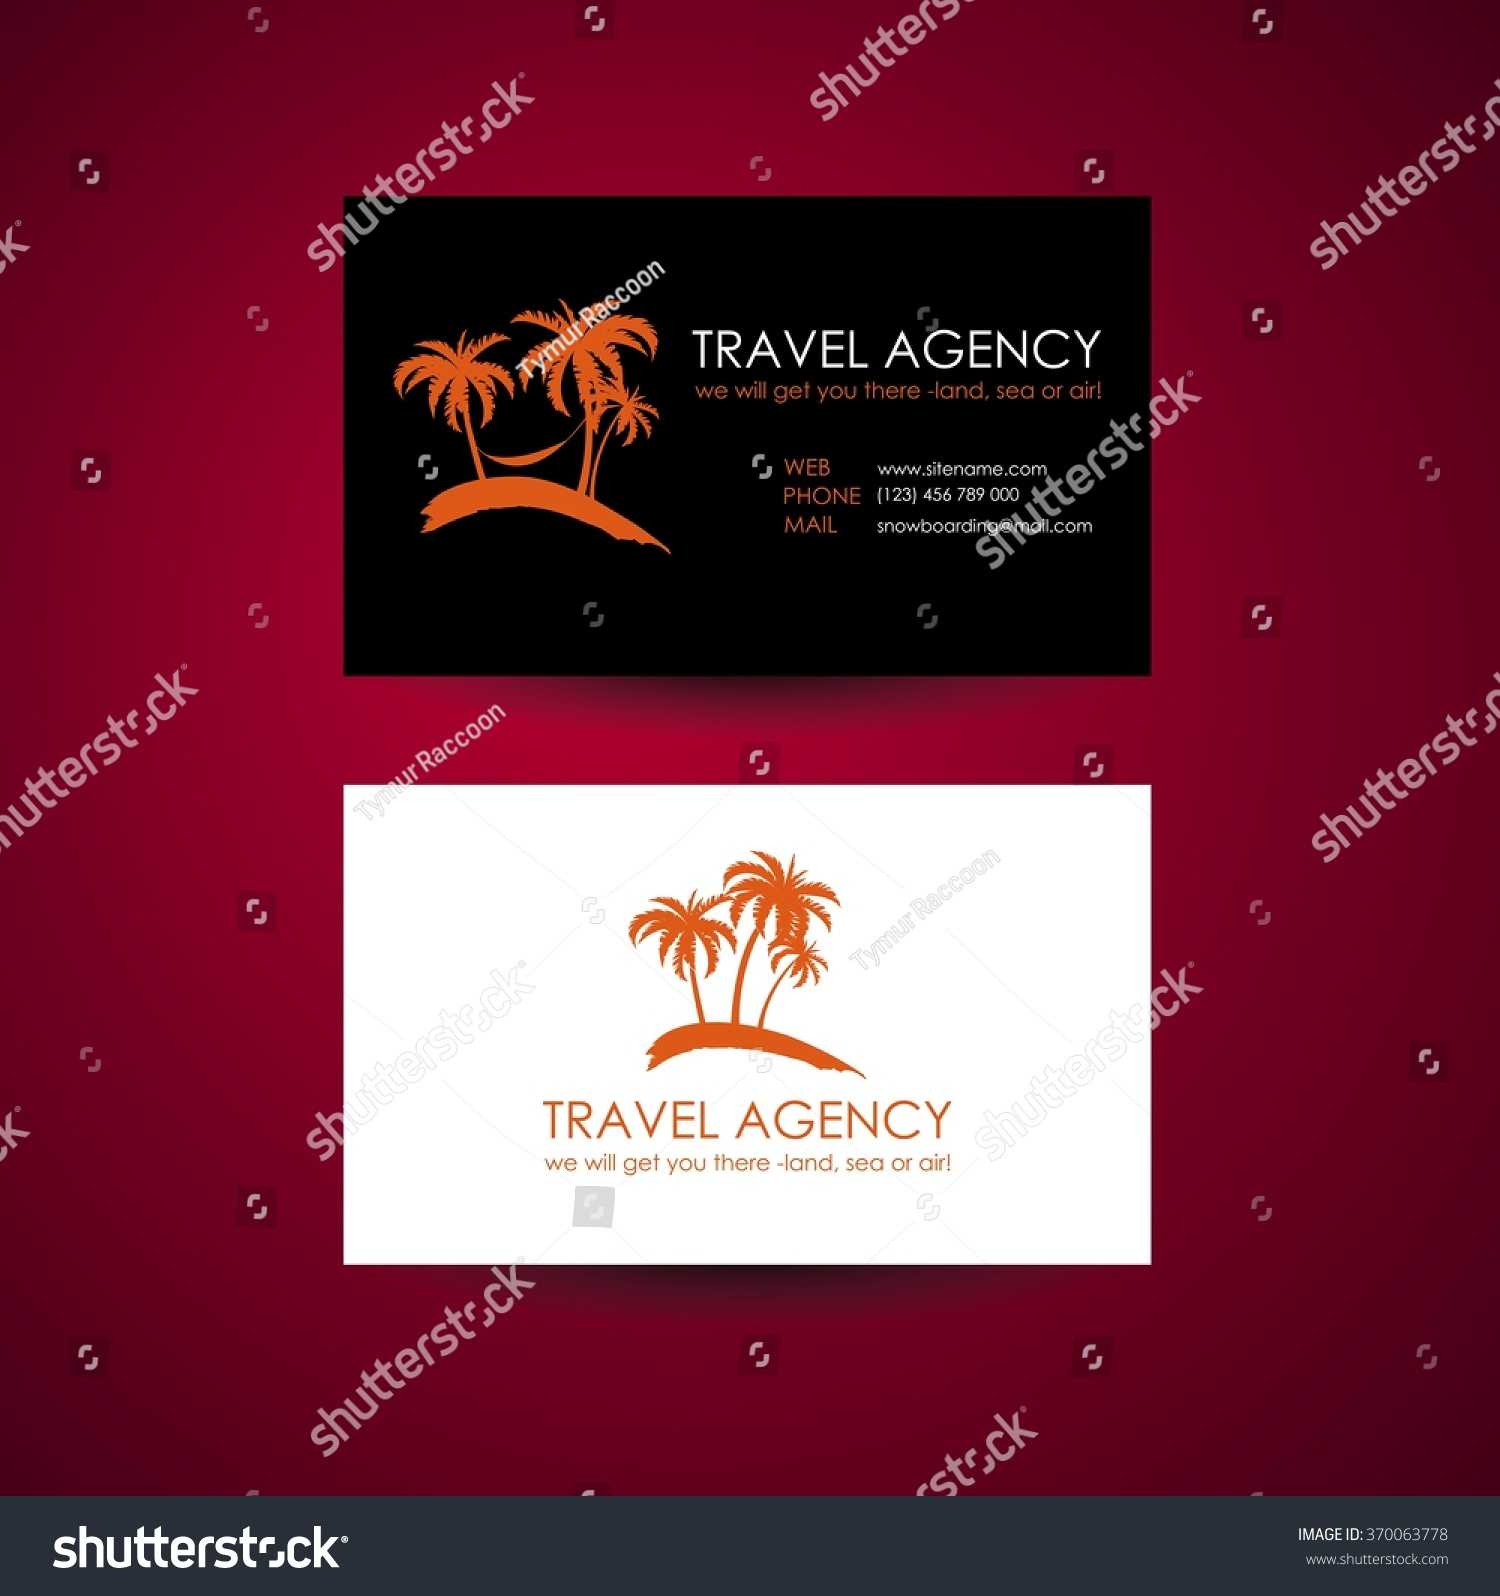 Travel Agency Business Card Template Travel Stock Photo (Photo ...